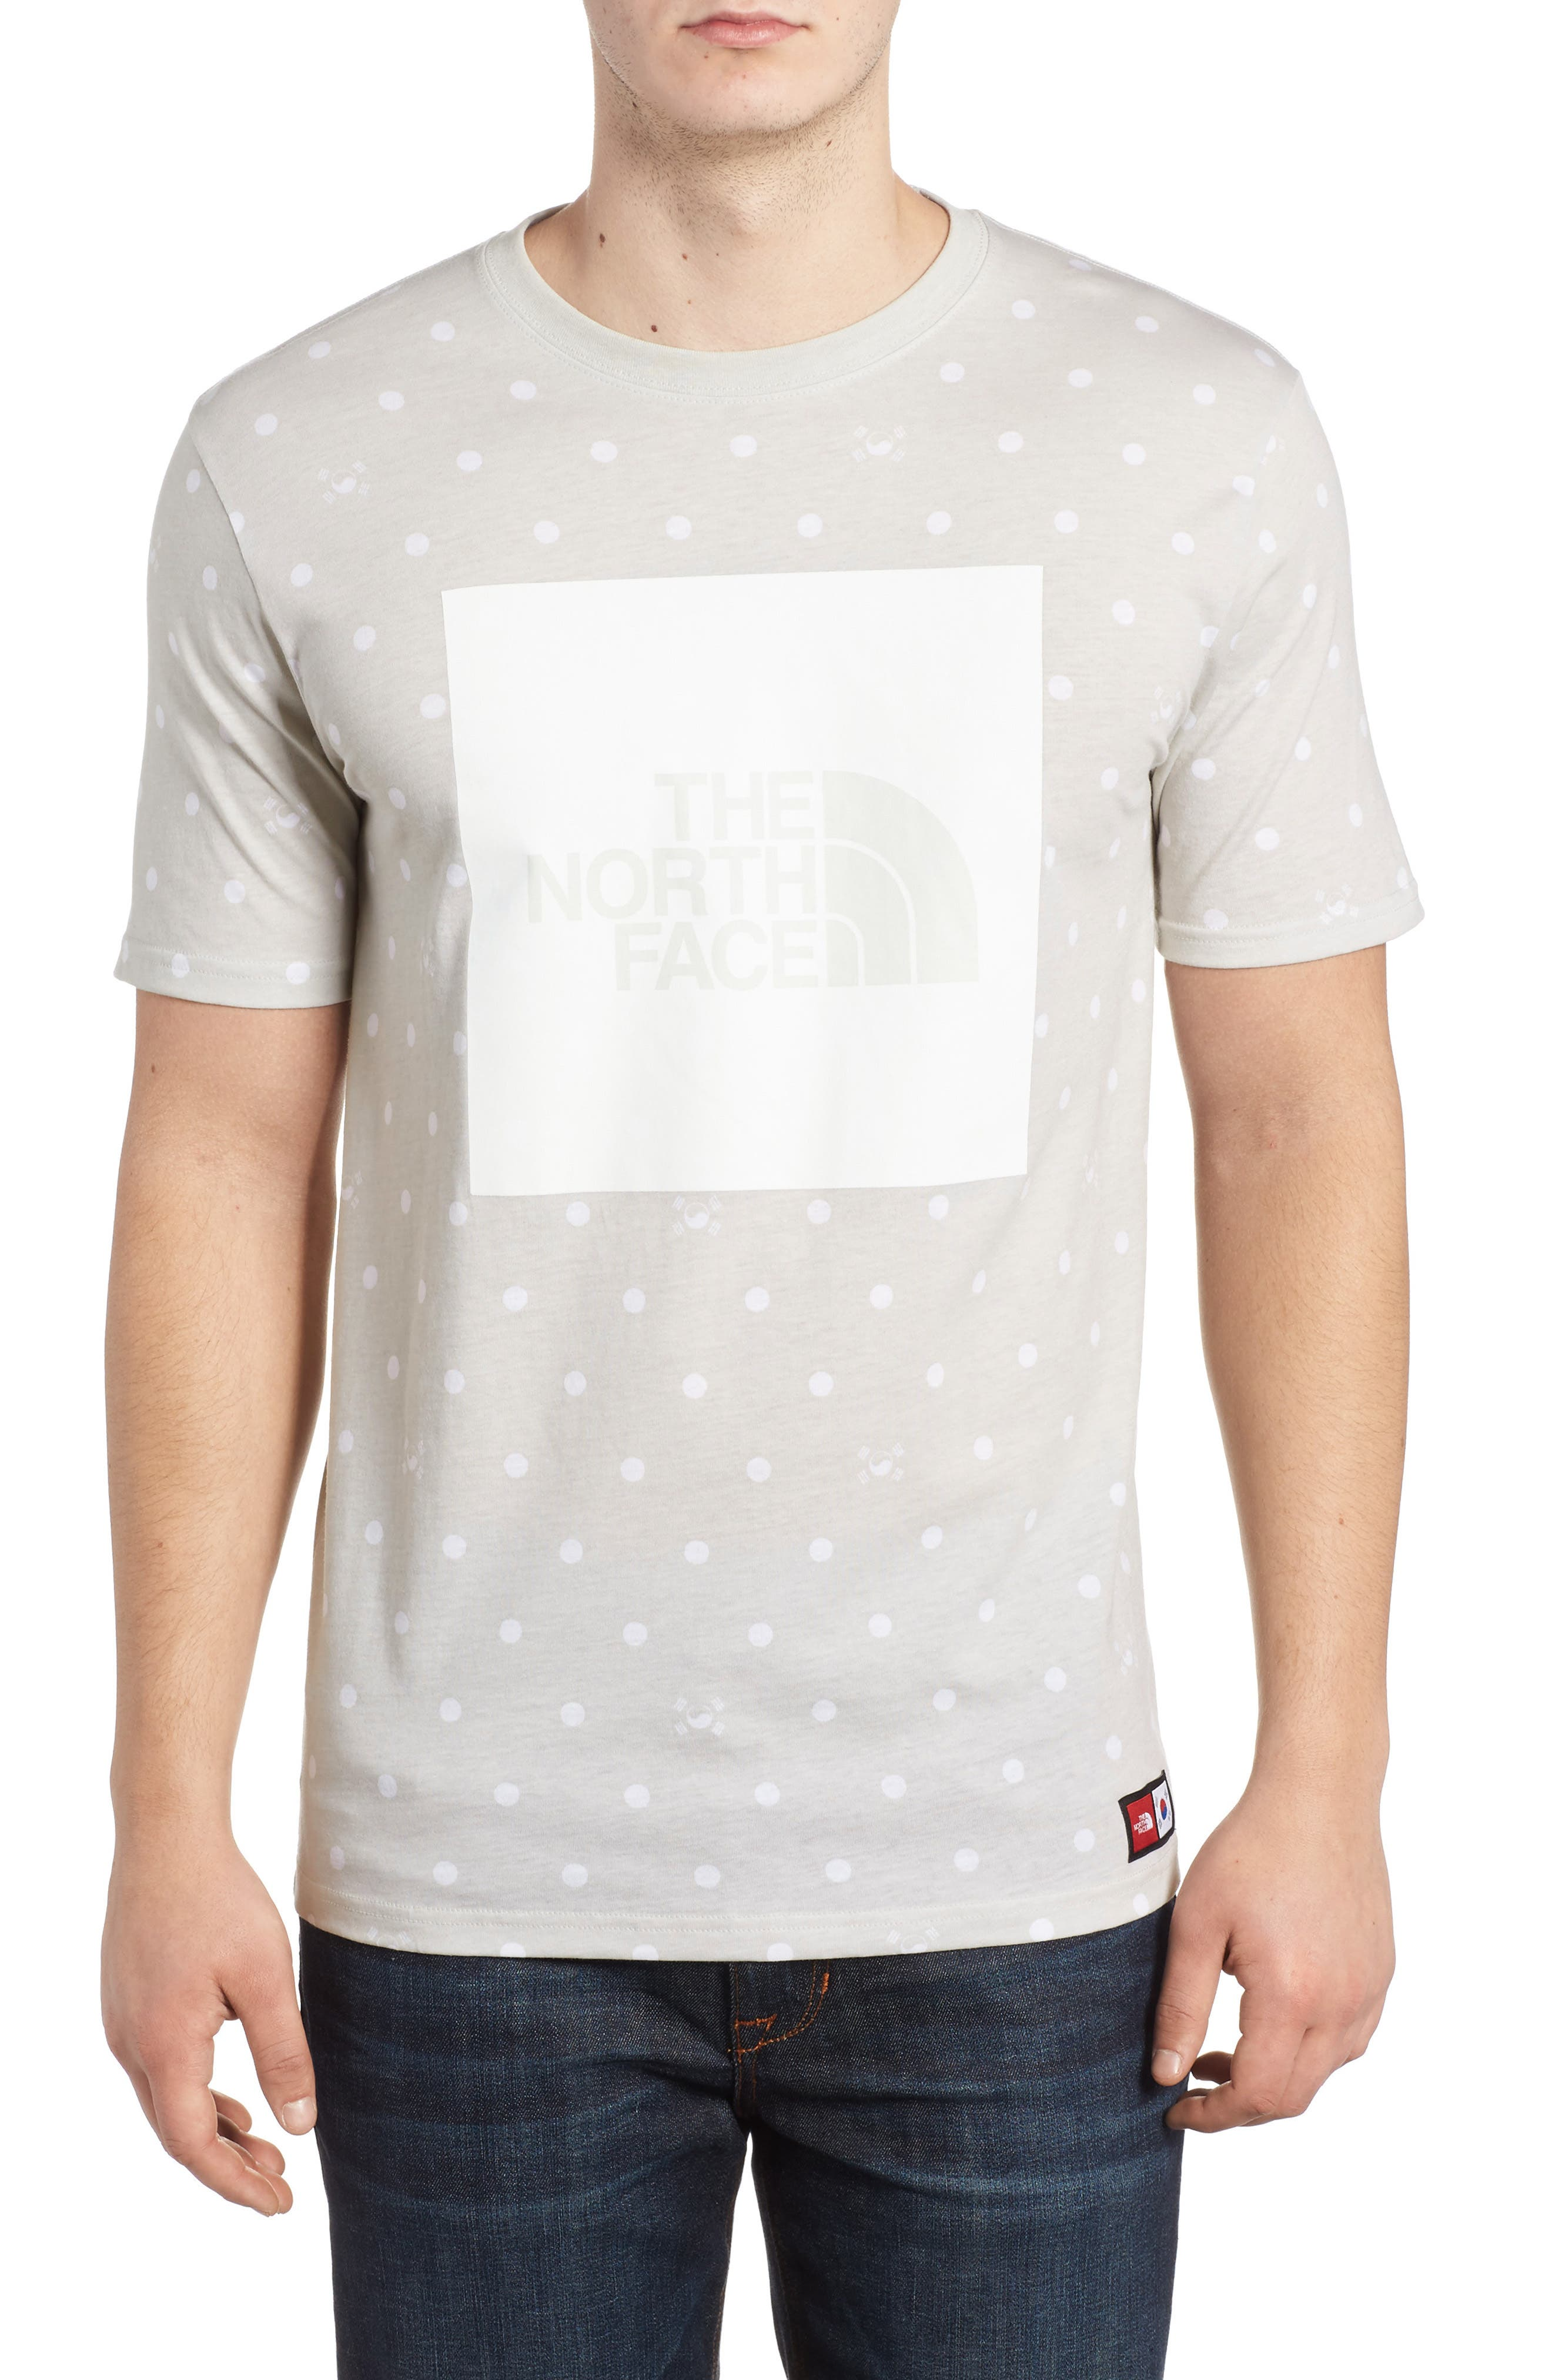 Main Image - The North Face International Collection Star Print T-Shirt